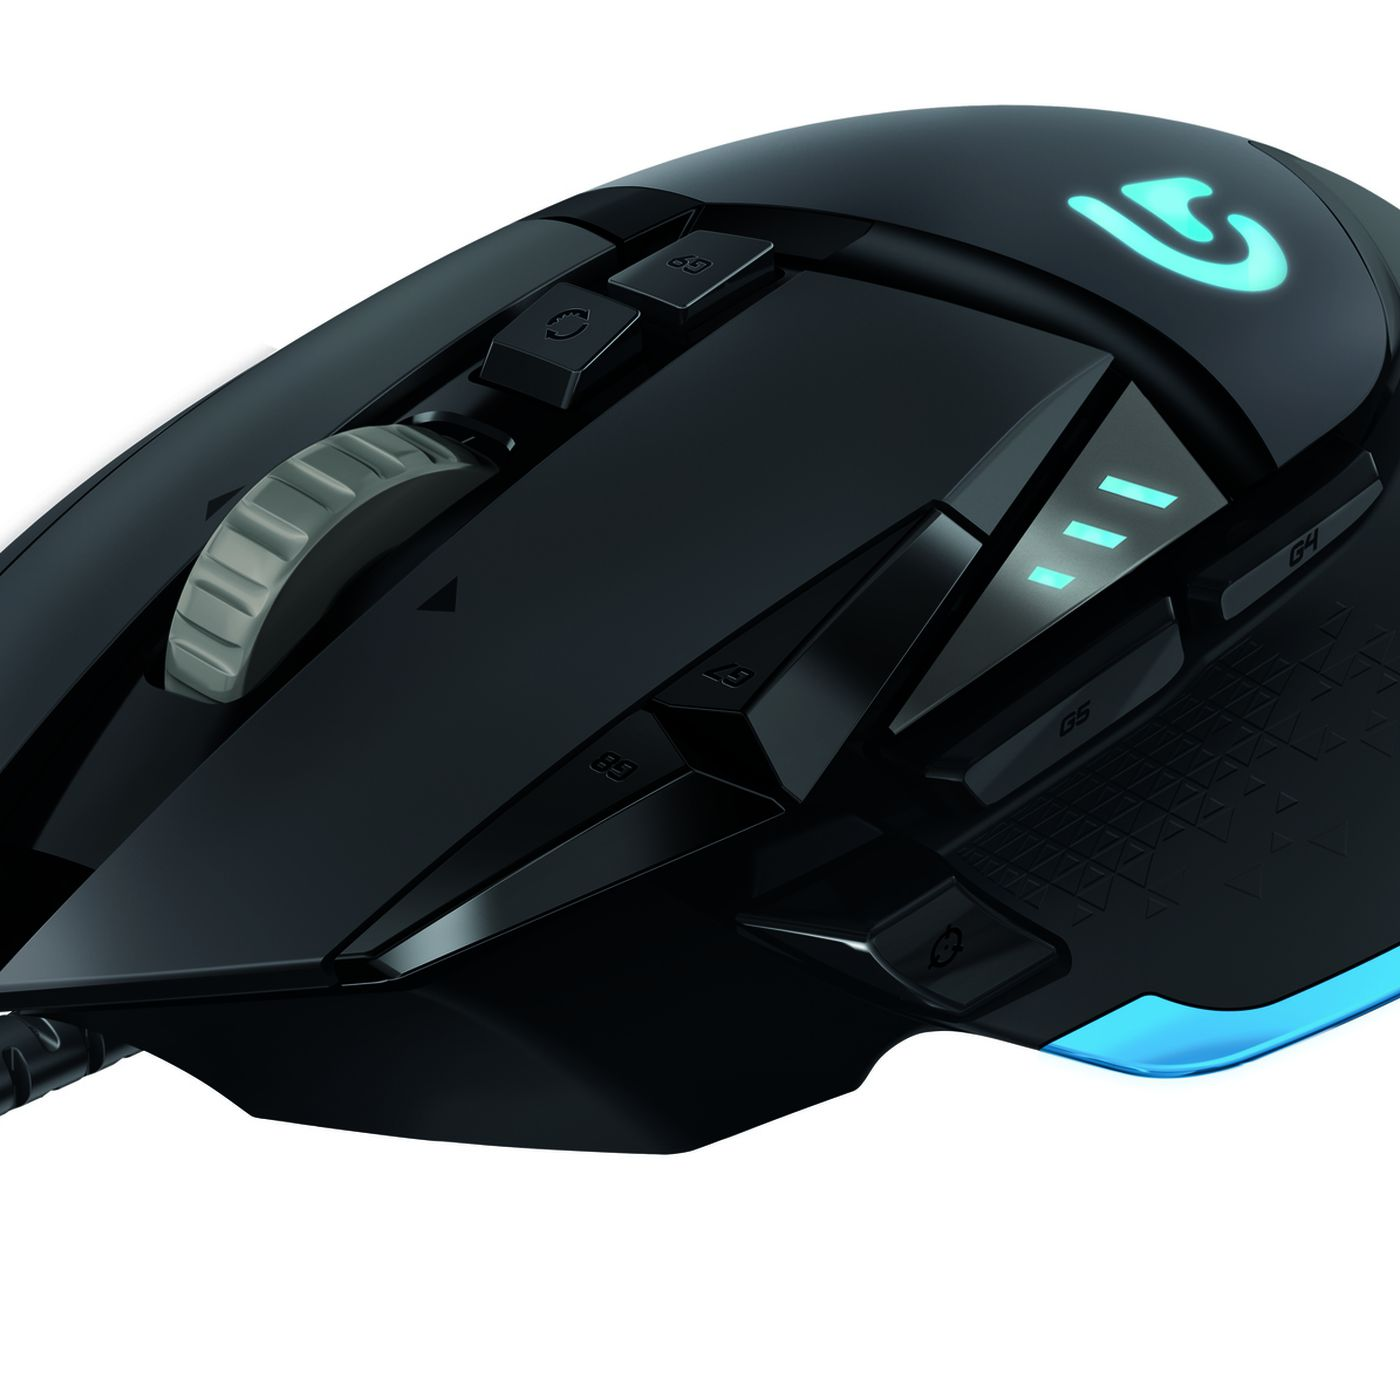 2638c408c03 Logitech's G502 Proteus Core tunable gaming mouse with 12,000 DPI sensor  hits in April